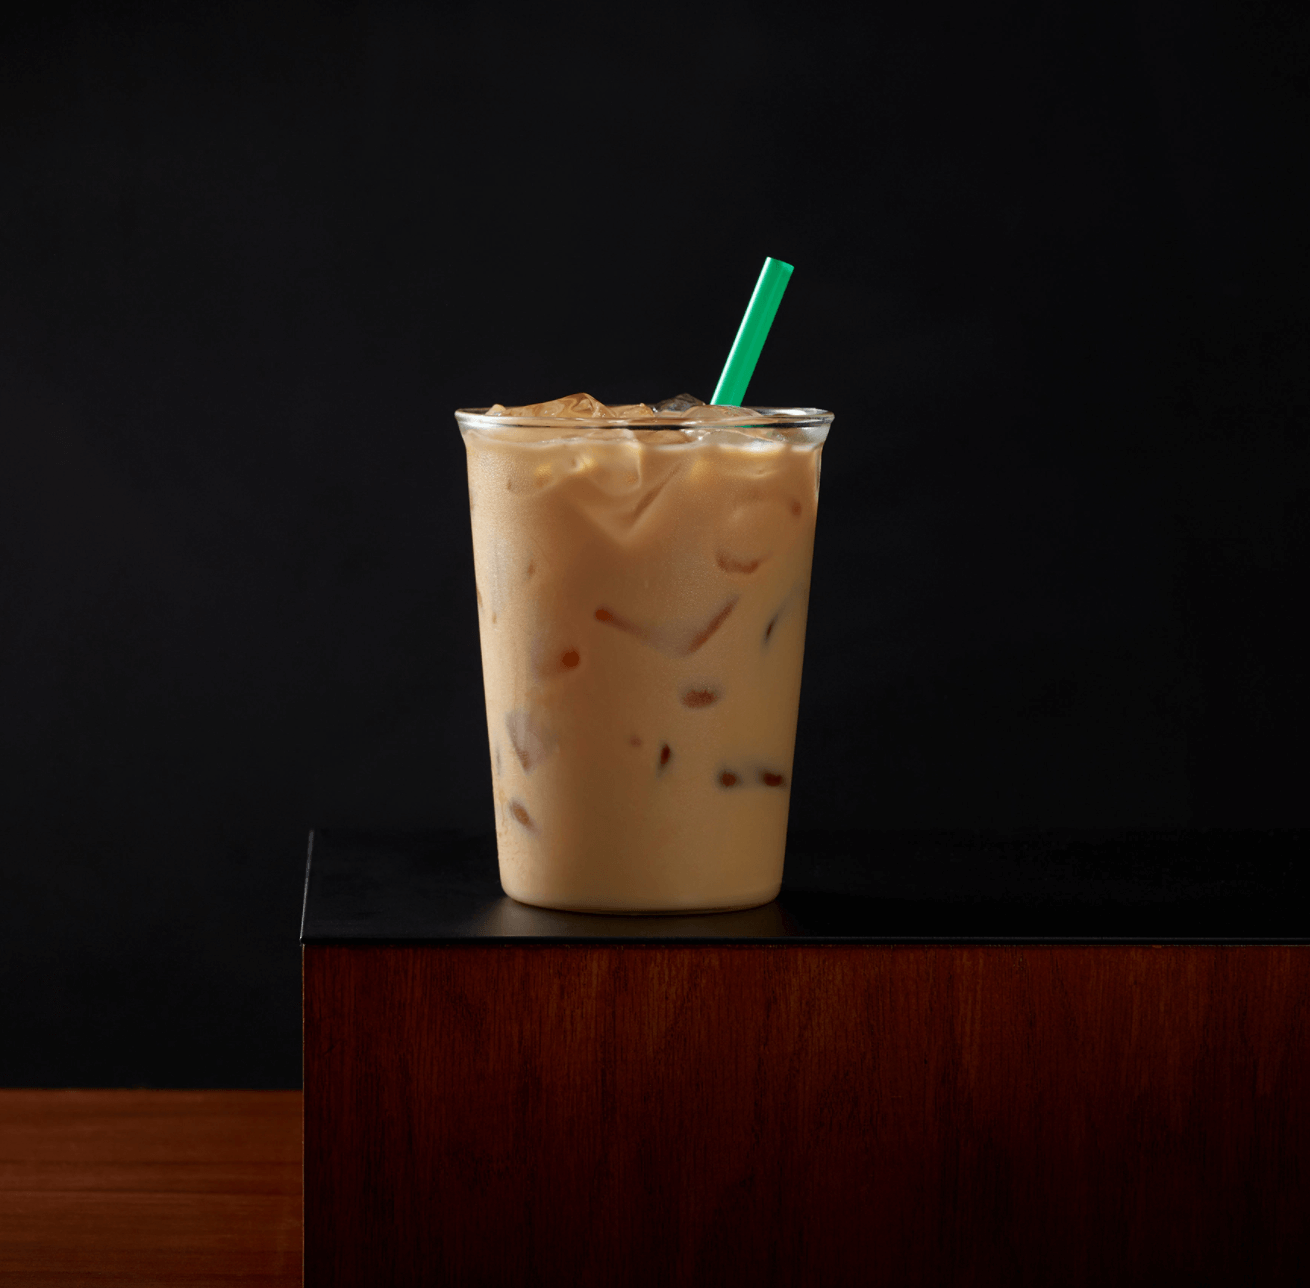 Healthy Starbucks Drinks: The Complete List (2018 Update